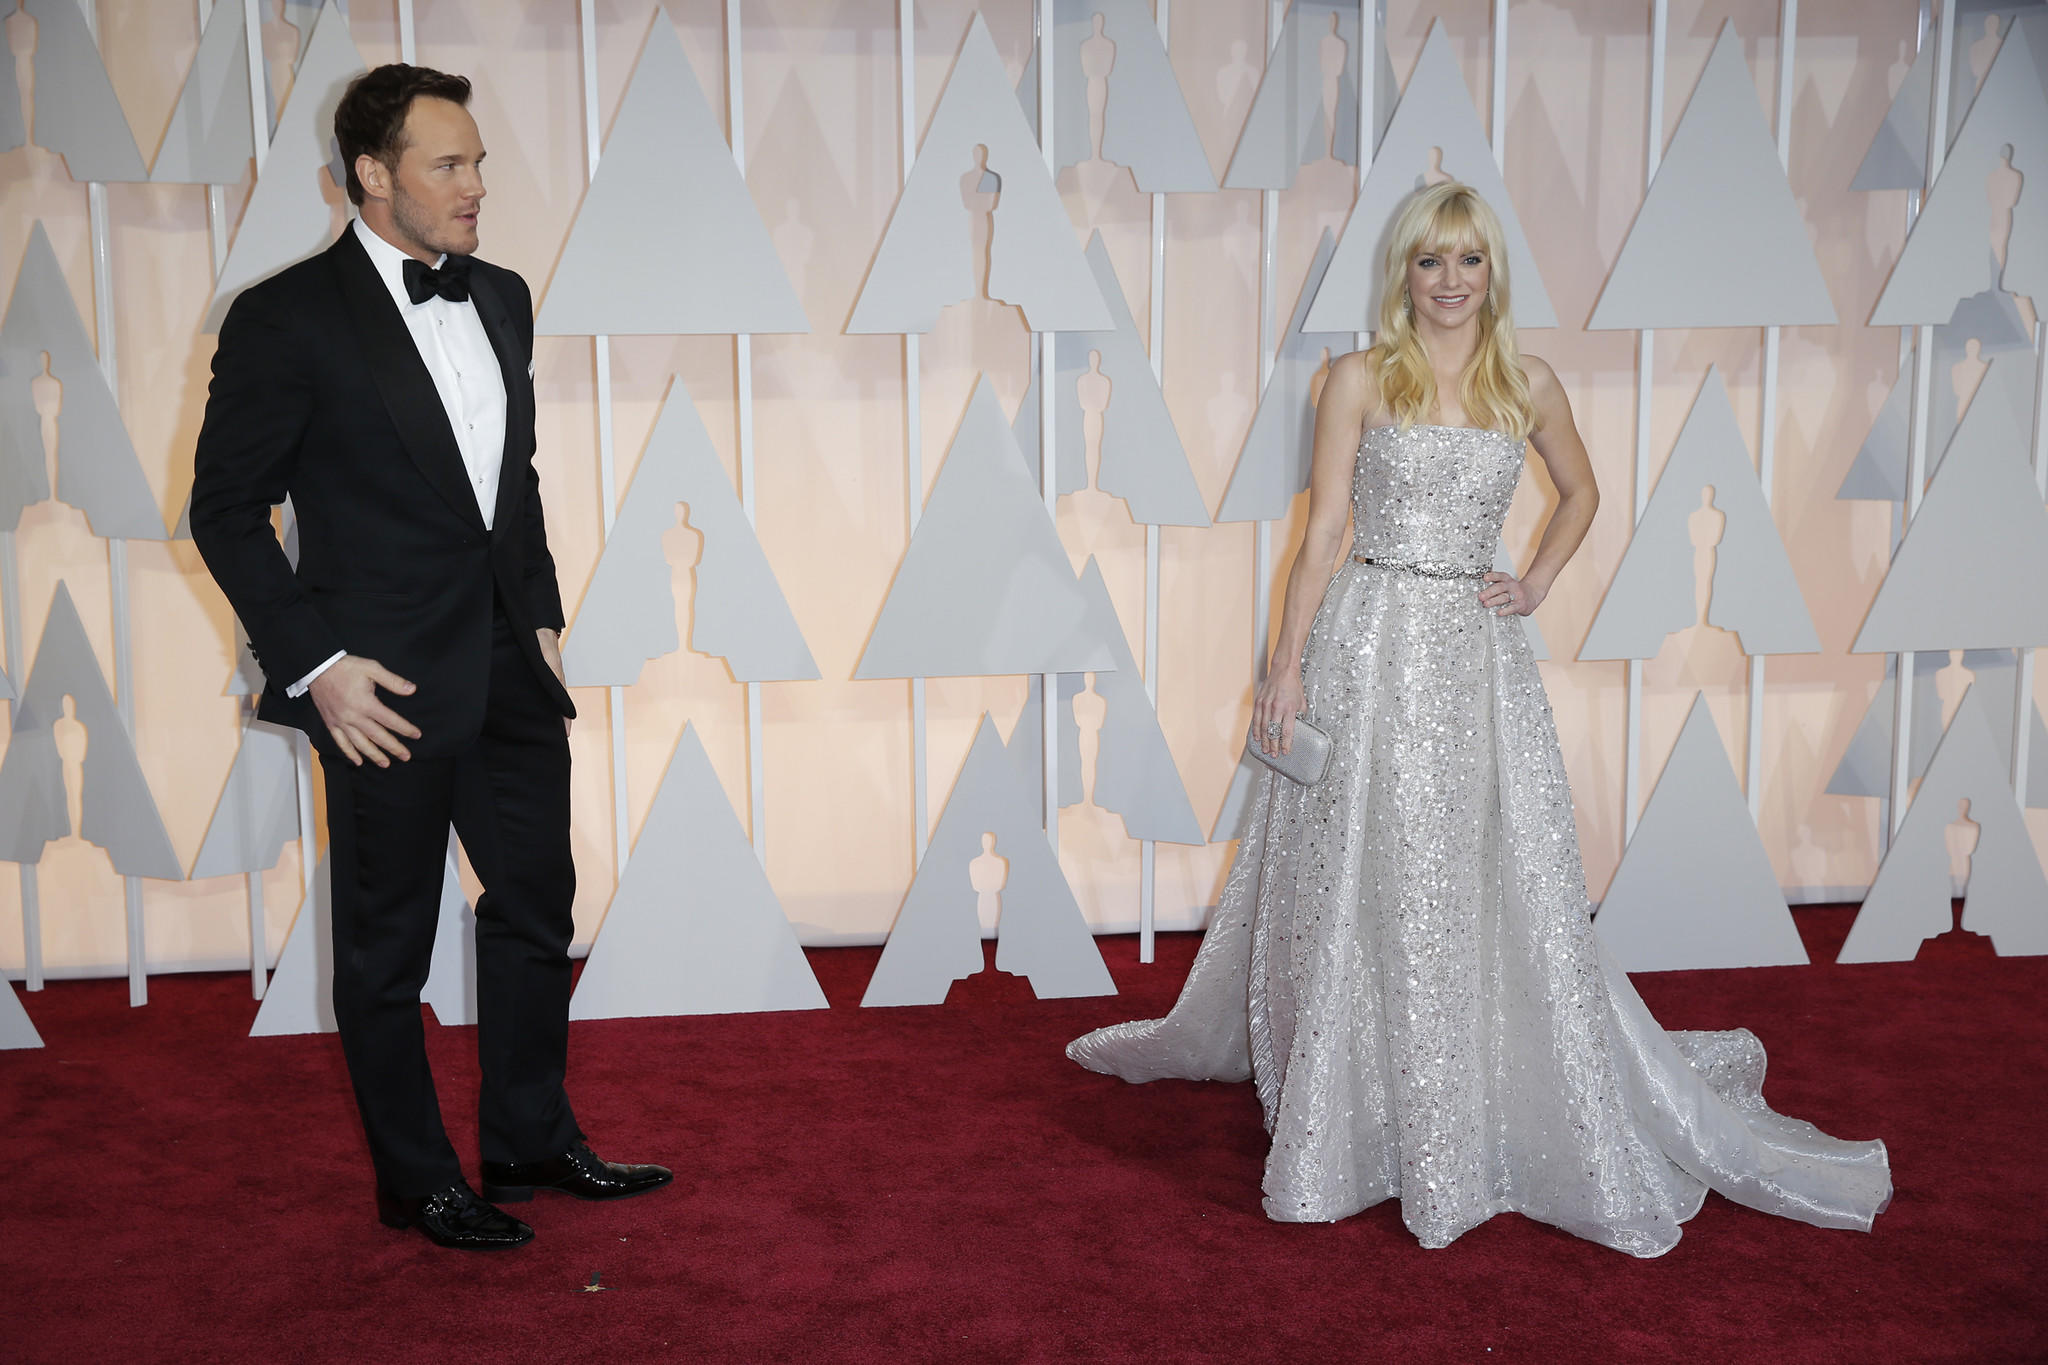 Kristen Bell gives advice to fans of Anna Faris and Chris Pratt